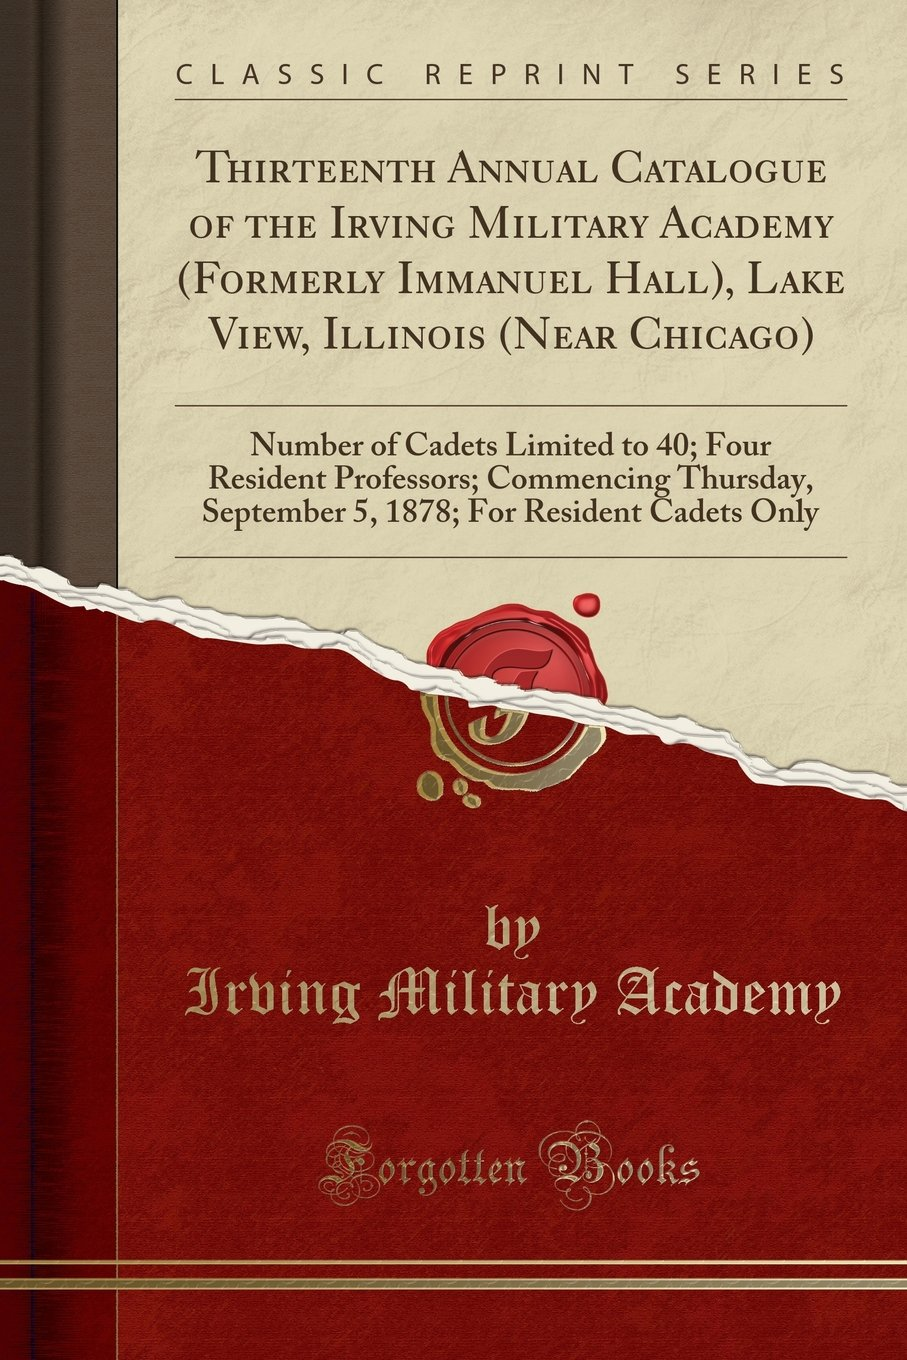 Thirteenth Annual Catalogue of the Irving Military Academy (Formerly Immanuel Hall), Lake View, Illinois (Near Chicago): Number of Cadets Limited to ... September 5, 1878; For Resident Cadets Only PDF